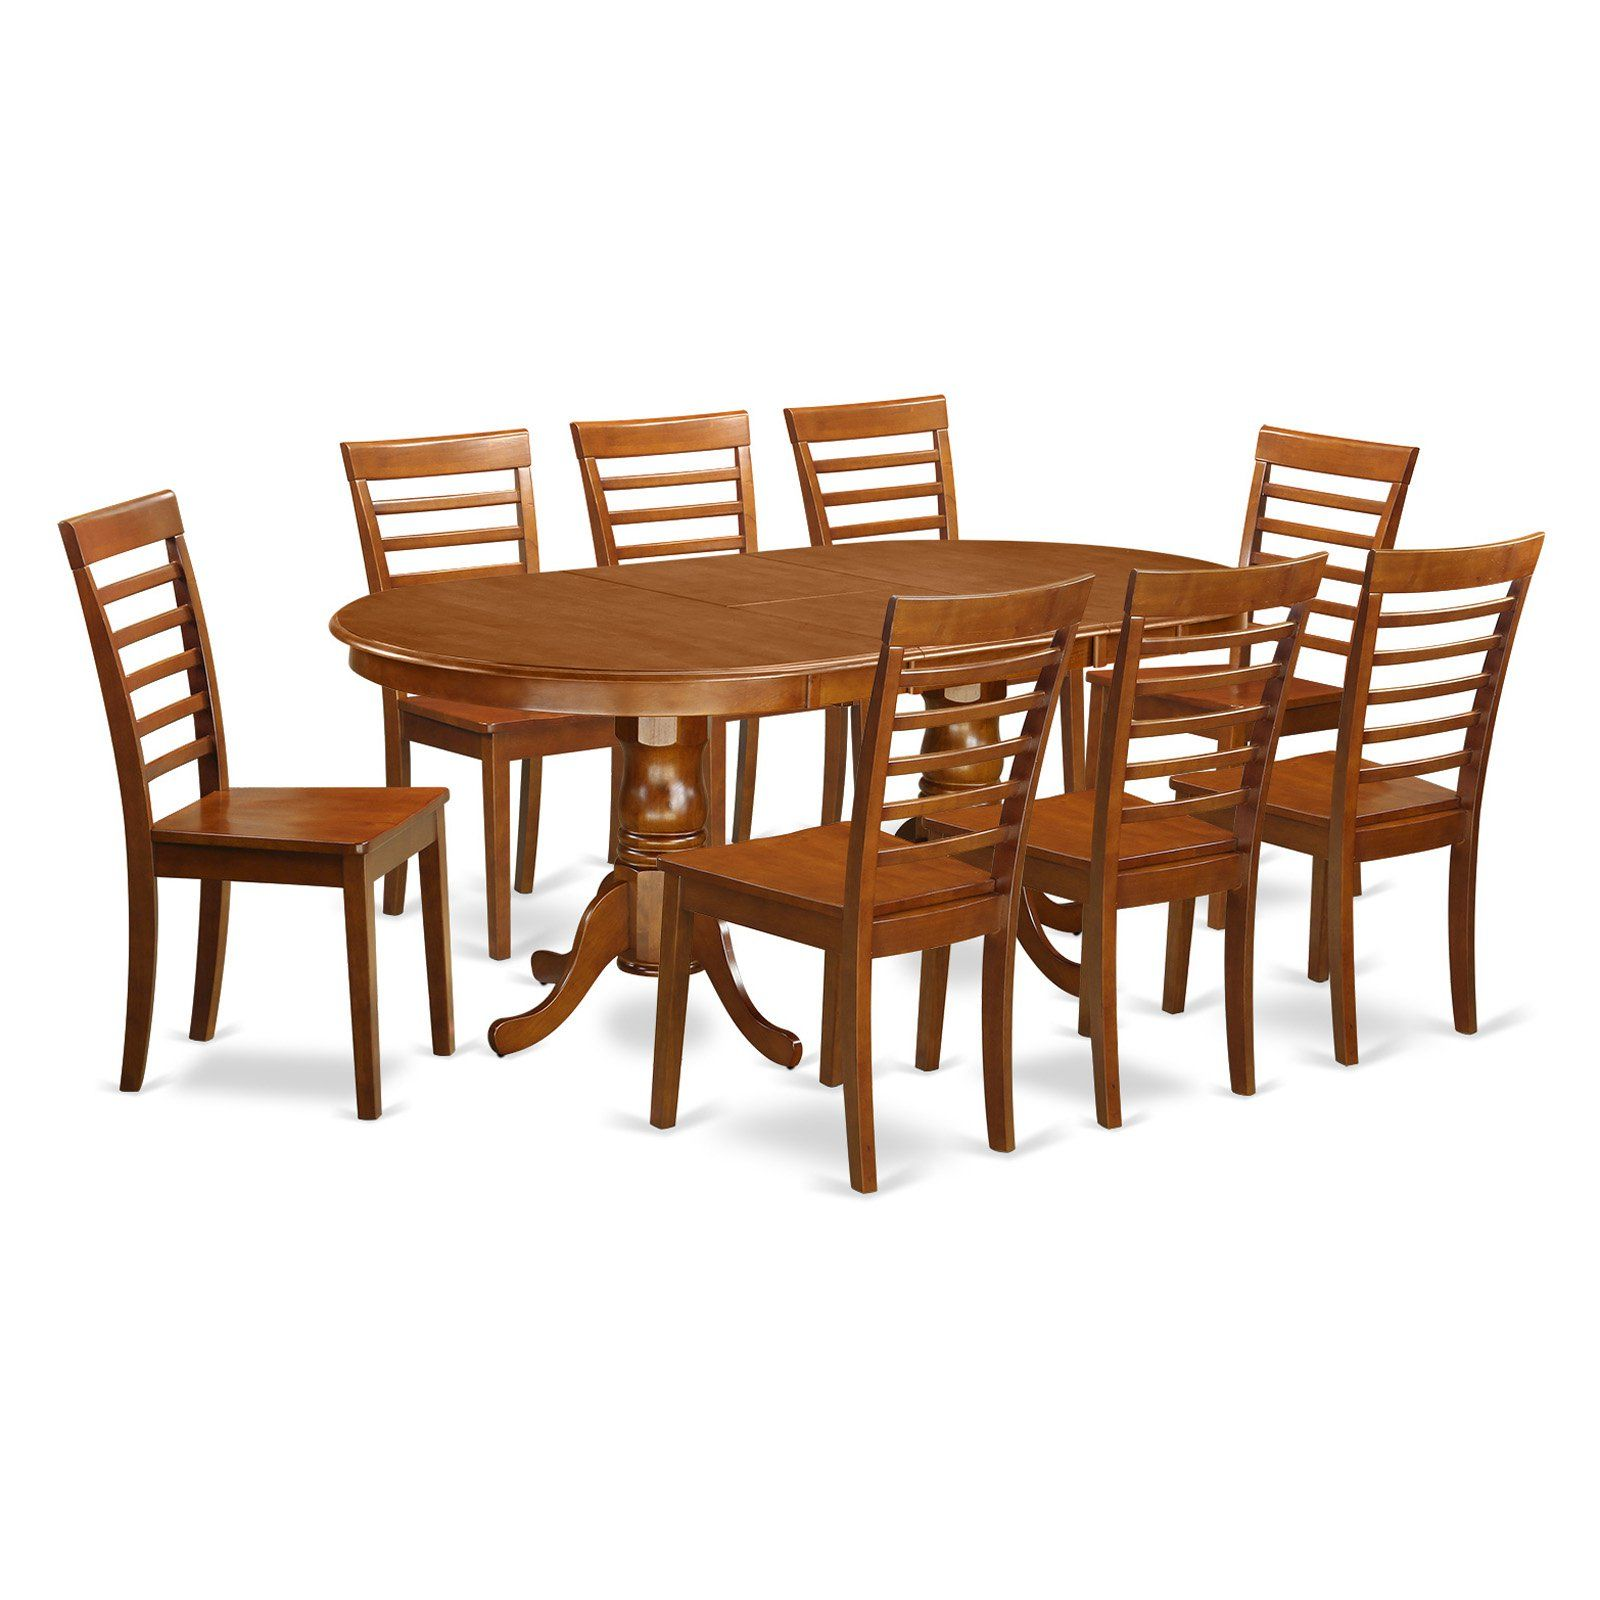 Enjoyable East West Furniture Plainville 9 Piece Straight Ladder Back Gmtry Best Dining Table And Chair Ideas Images Gmtryco